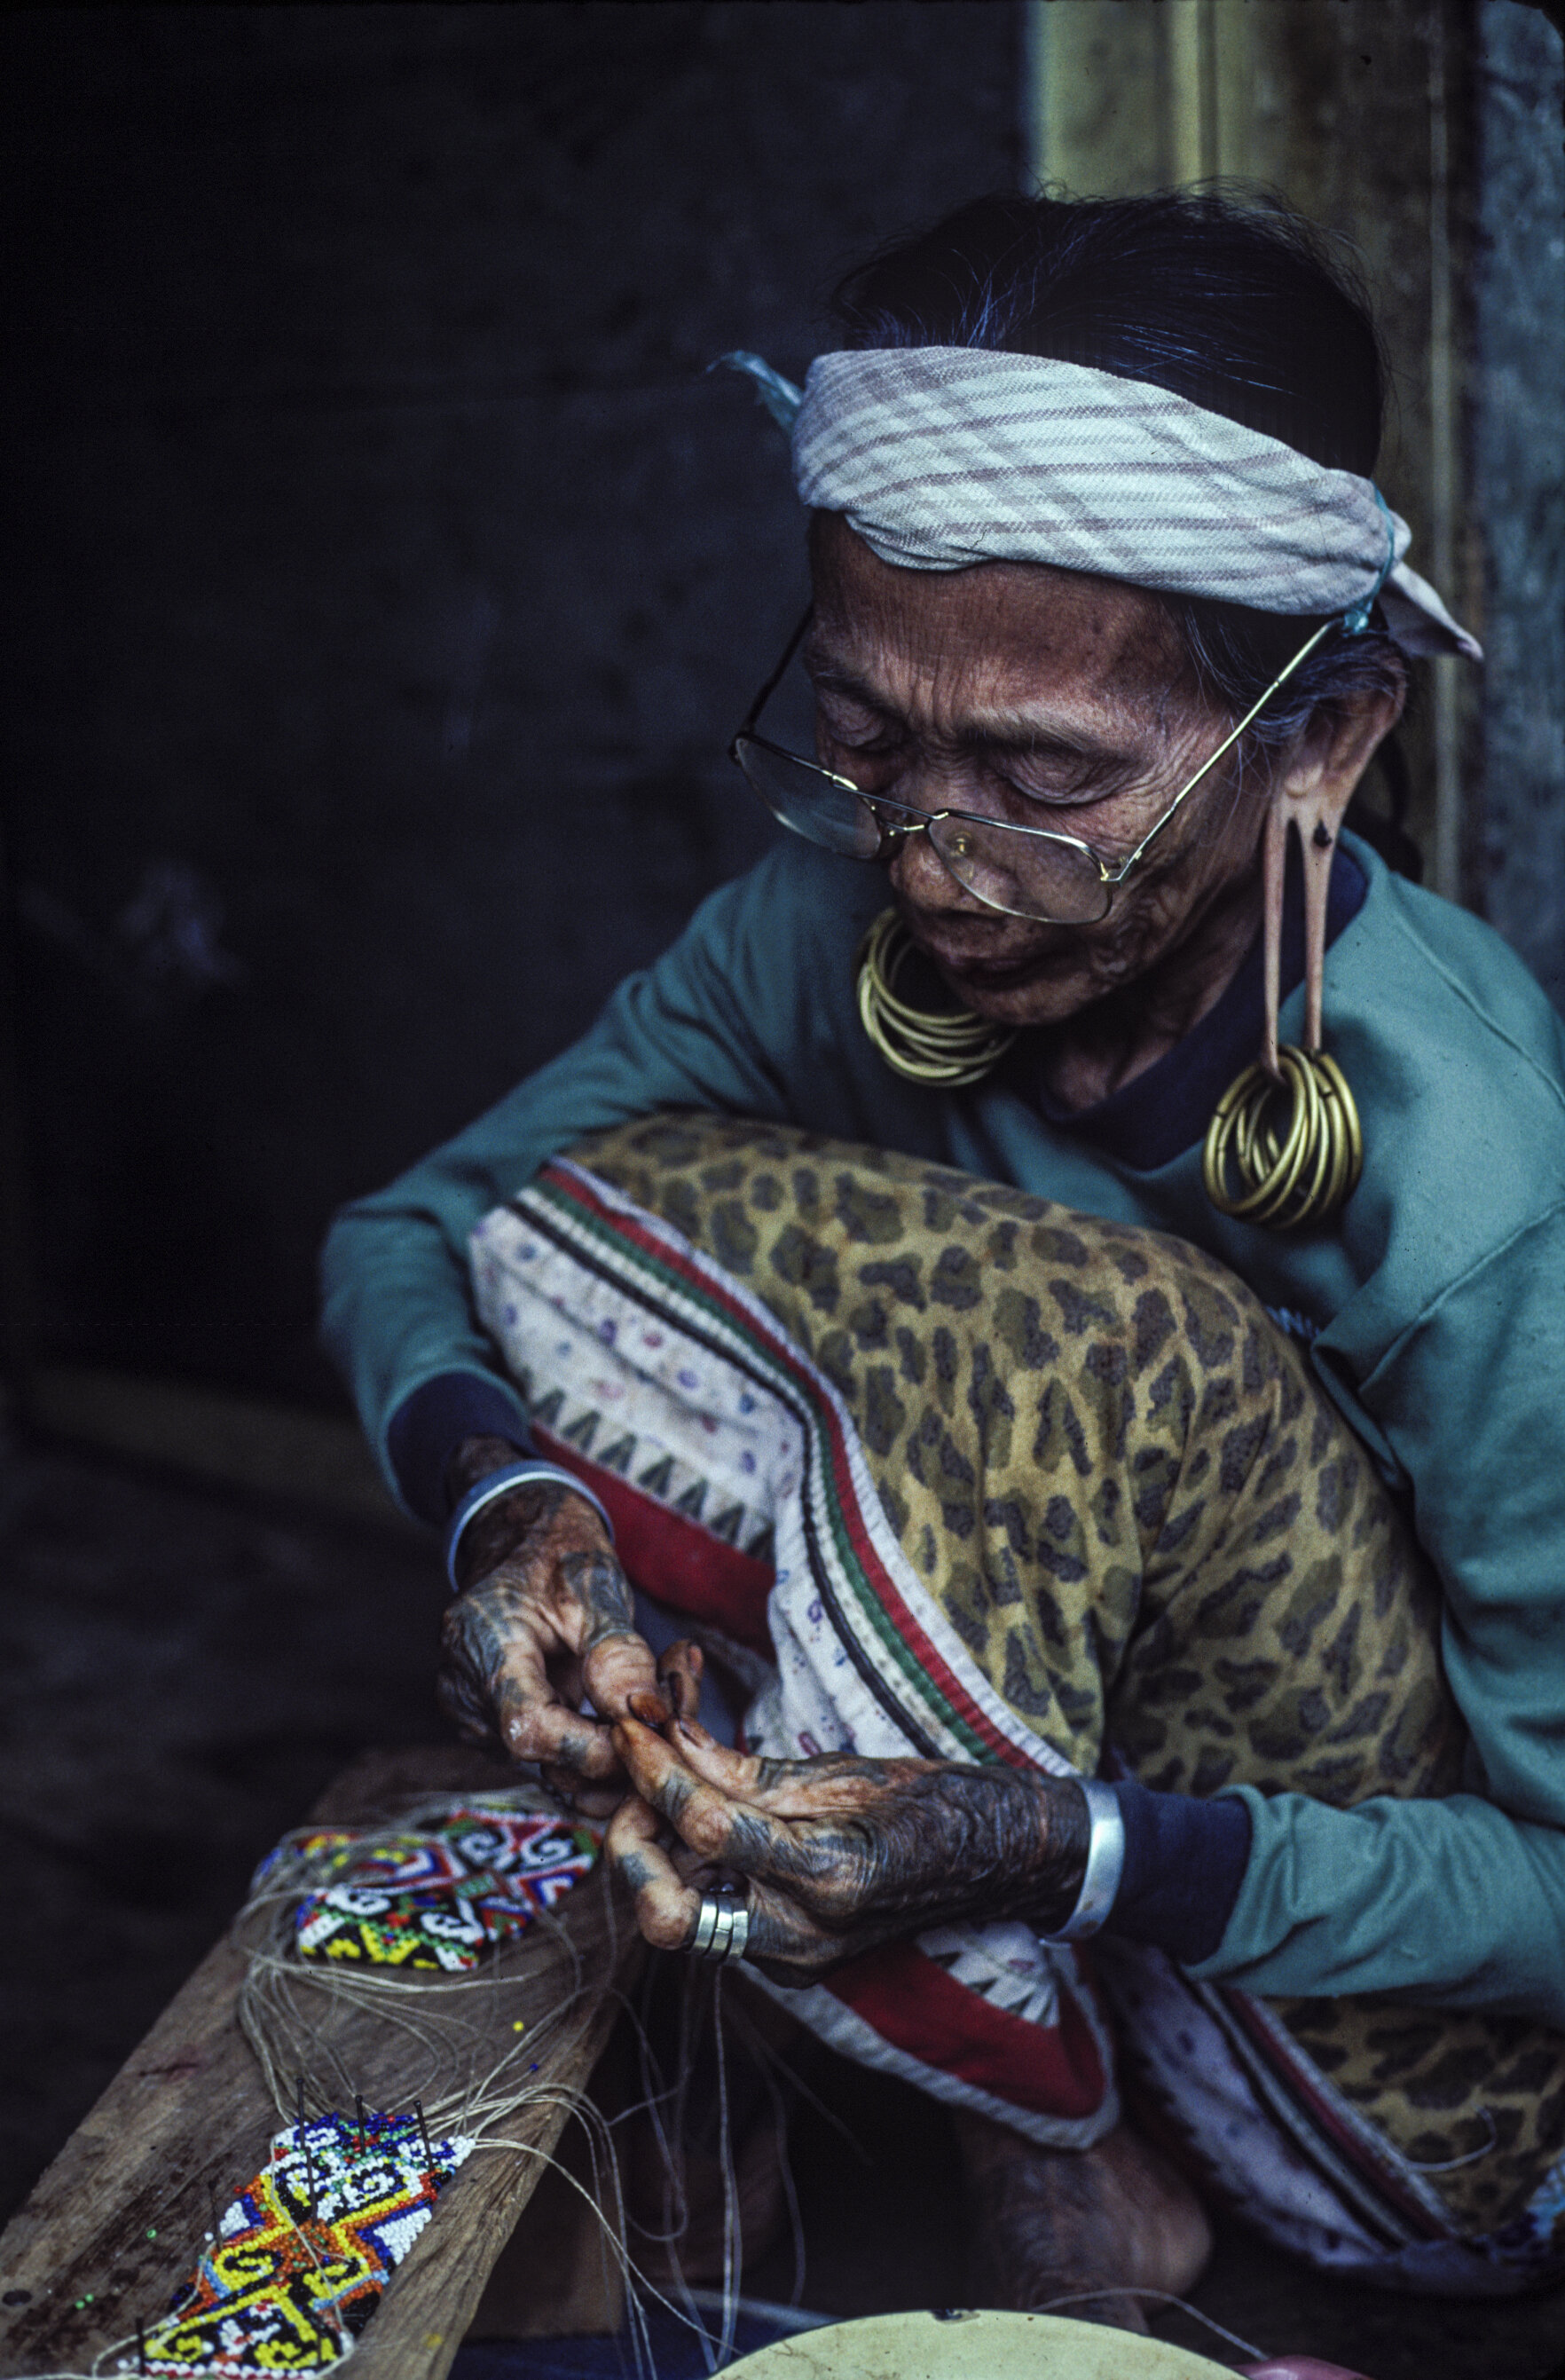 An Aoheng Dayak woman works on a beaded piece in the upper Mahakam village of Long Apari, at the time the last proper village before the headwaters of the river. © Rio Helmi